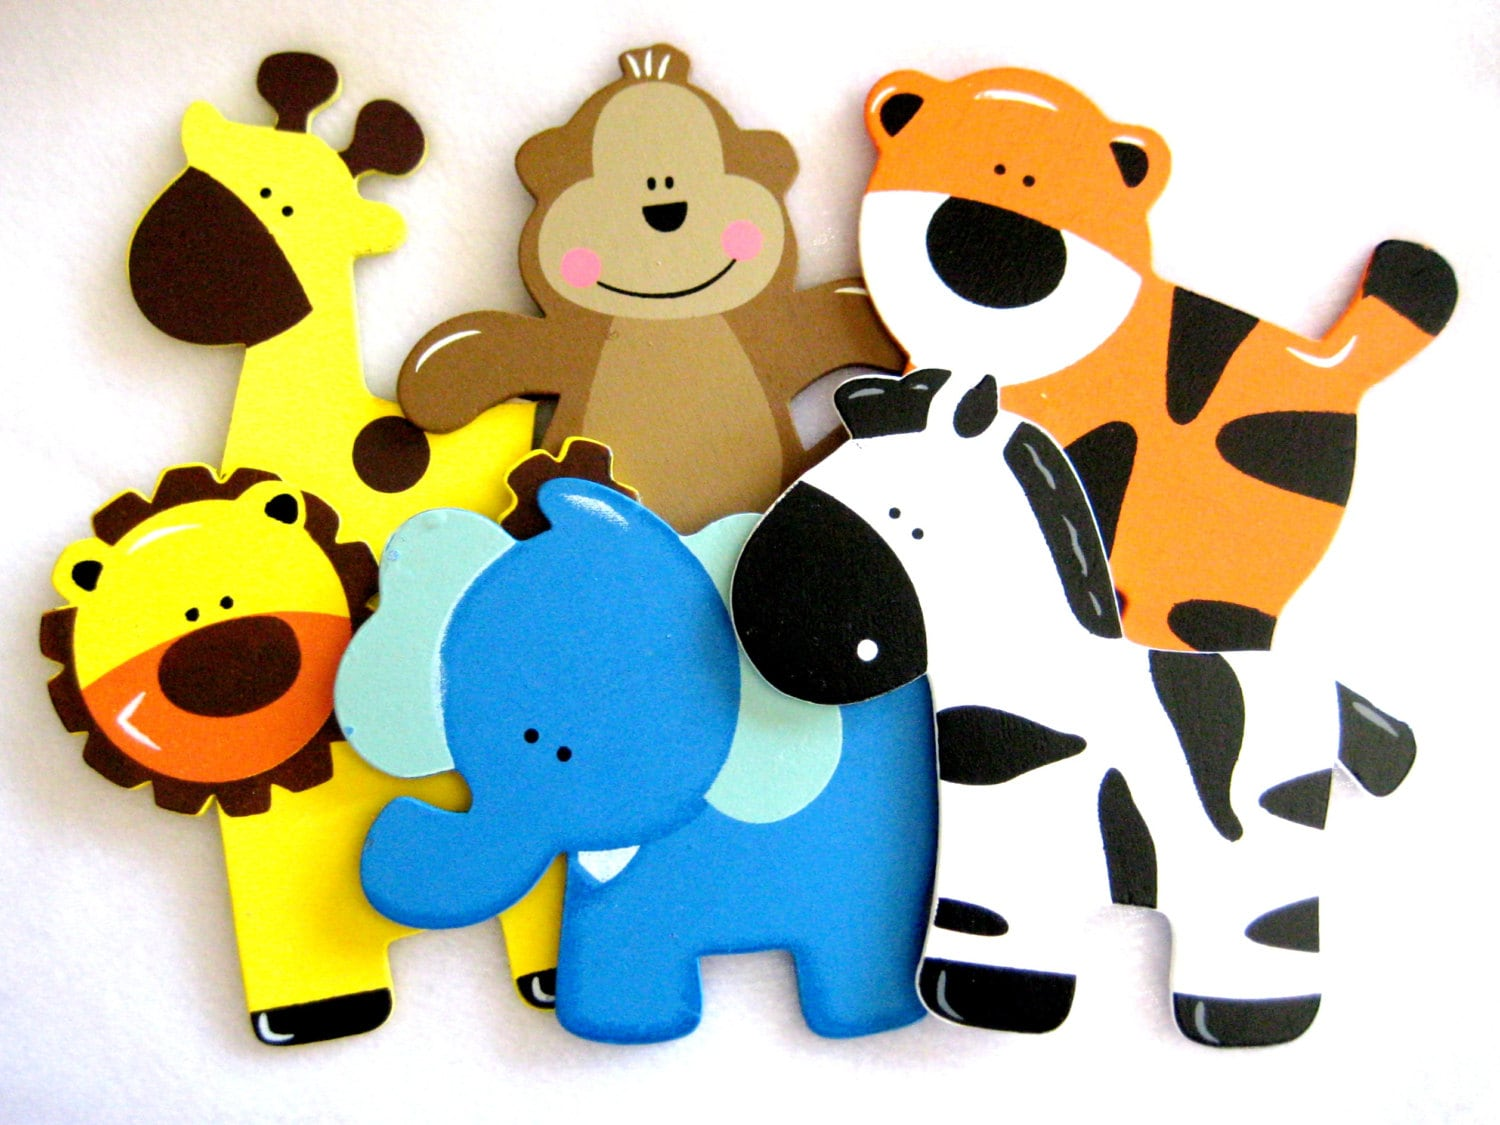 Wooden Animal Shapes For Kids Rooms